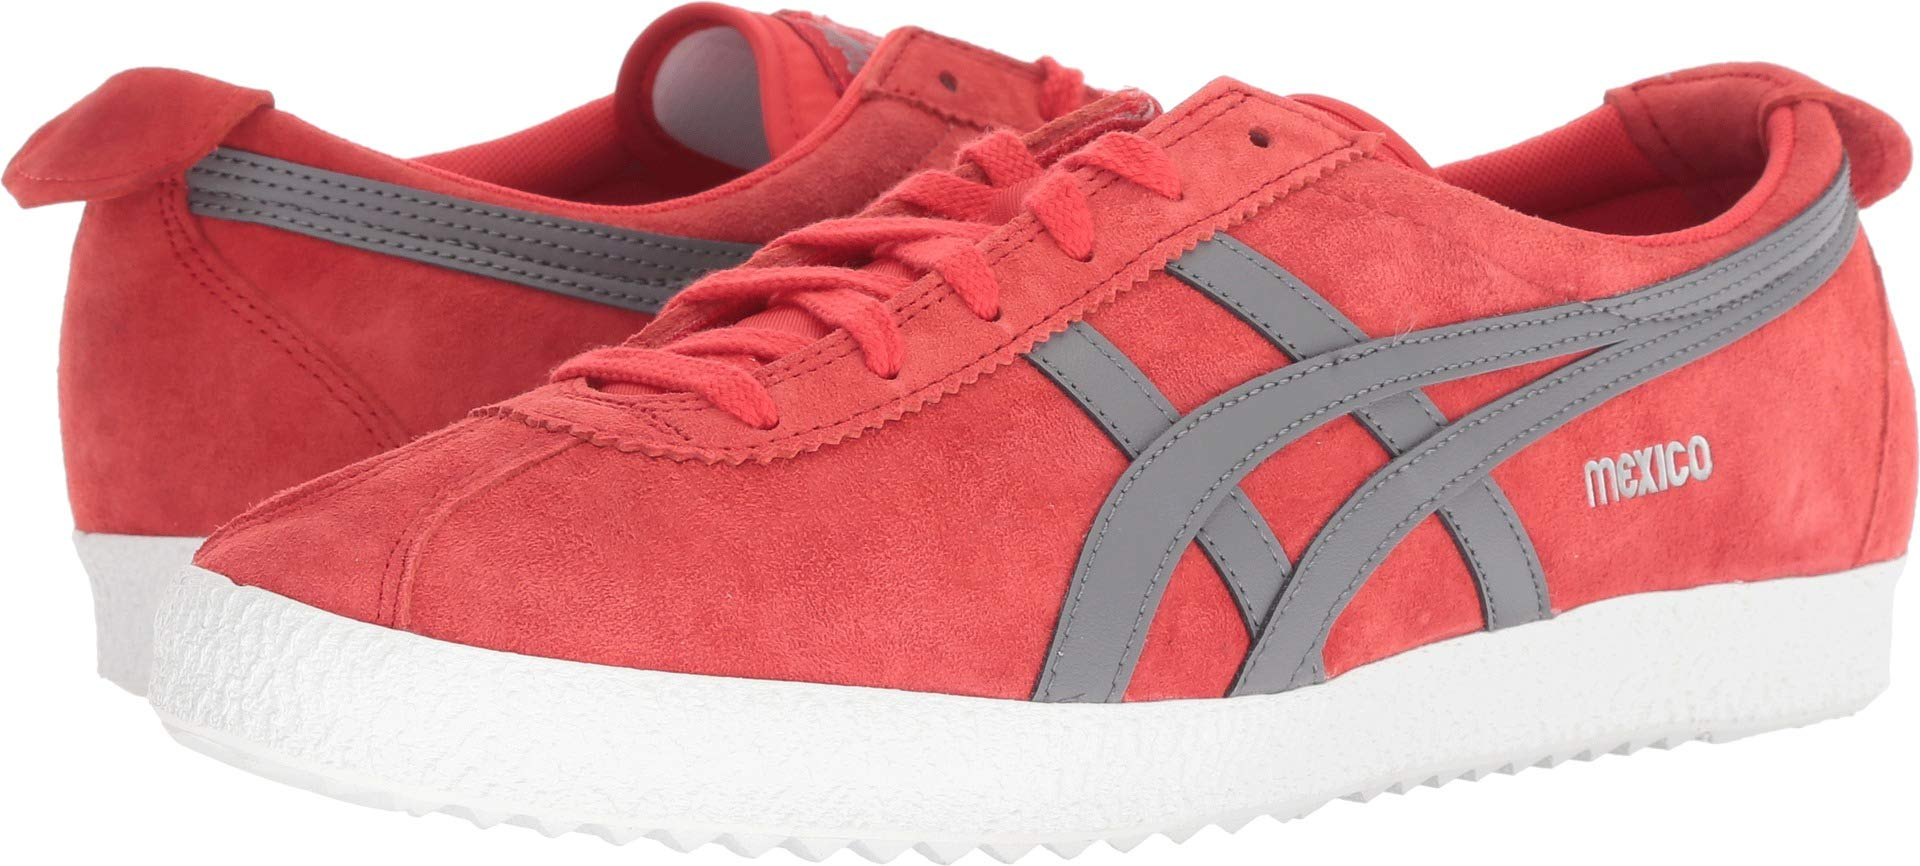 Onitsuka Tiger by Asics Unisex Mexico Delegation Red Alert/Carbon 11.5 Women / 10 Men M US Medium